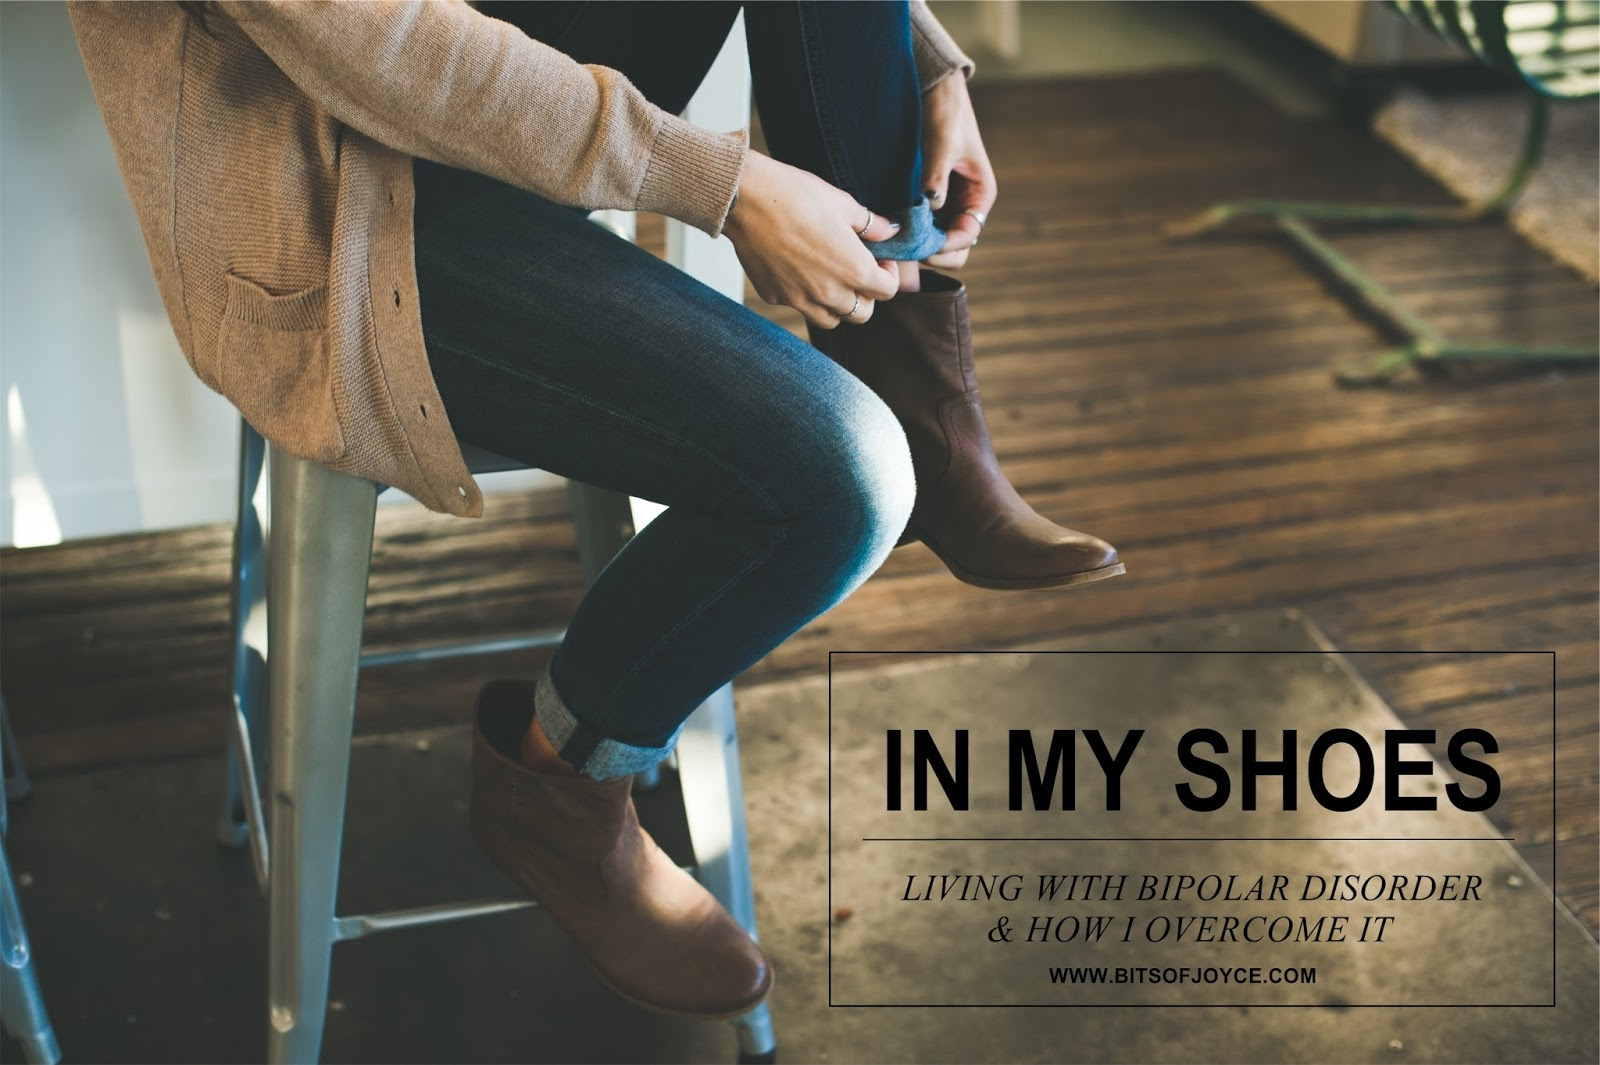 in my shoes, depression, bipolar disorder, bipolar, life, anxiety, life lessons, living with bipolar disorder, bits + pieces, journal, mental health, mental illness